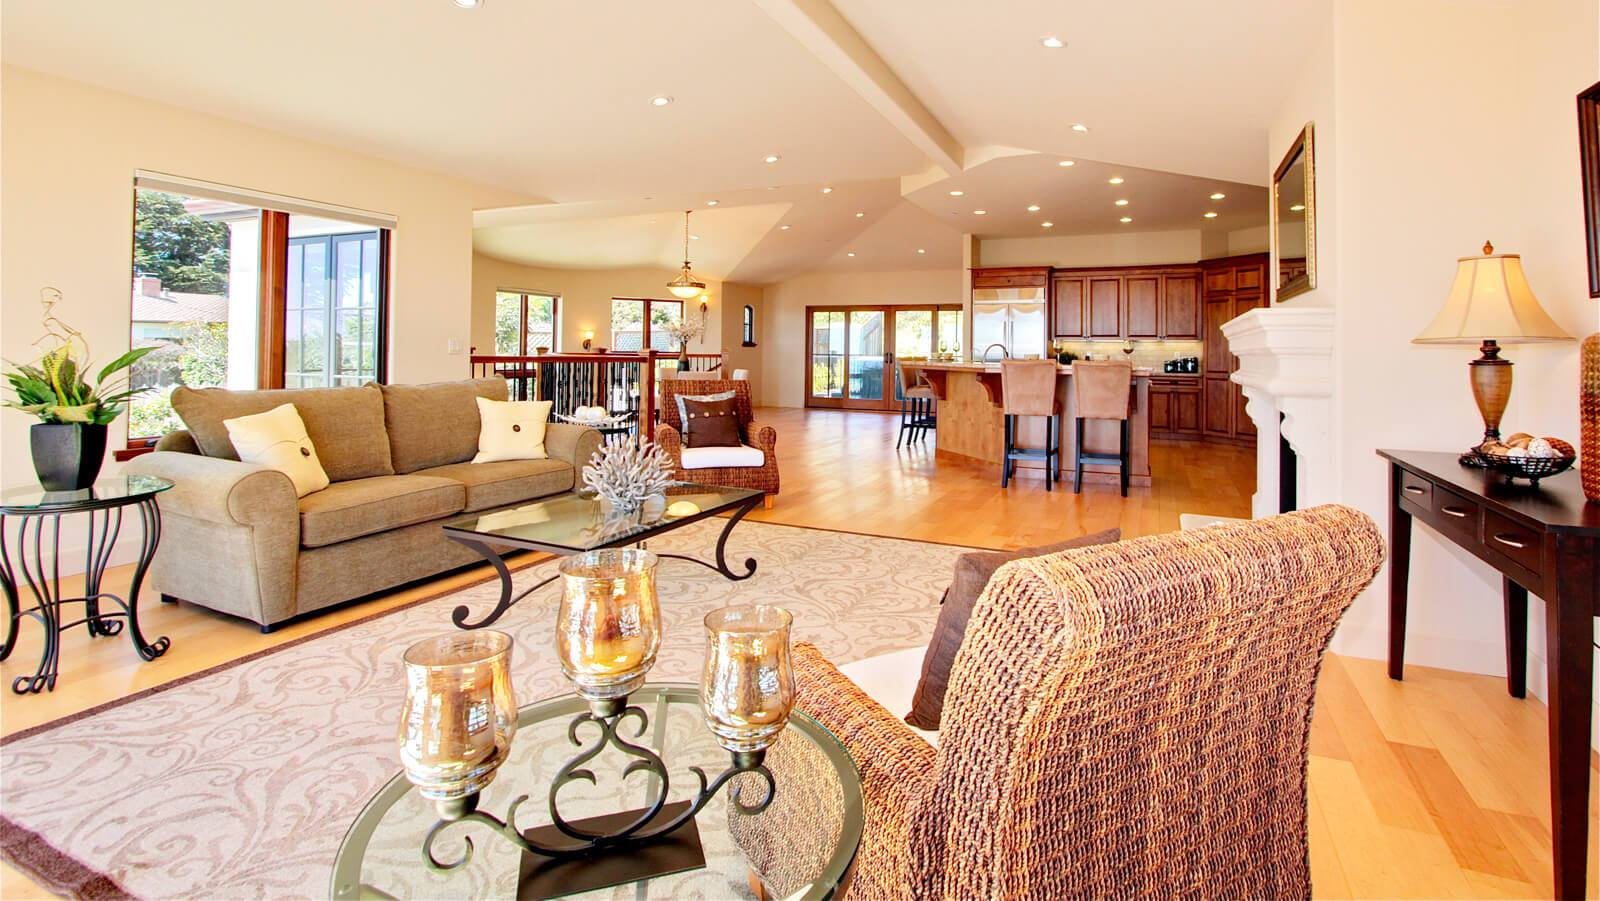 Home Staging in La Selva Beach, CA, by Limelight Home Staging